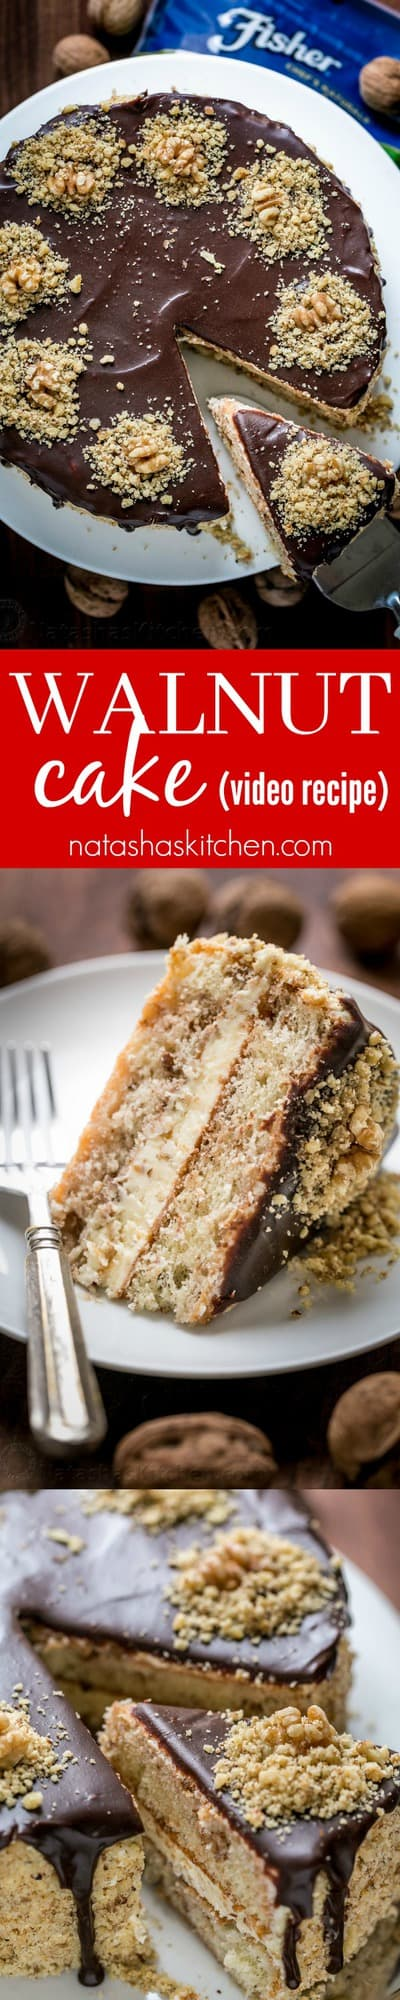 Royal Walnut Cake is beautiful and delicious! The Russian buttercream frosting will surprise you. Everything about this walnut cake is good! (Video Recipe) YOU CAN DO THIS! | natashaskitchen.com